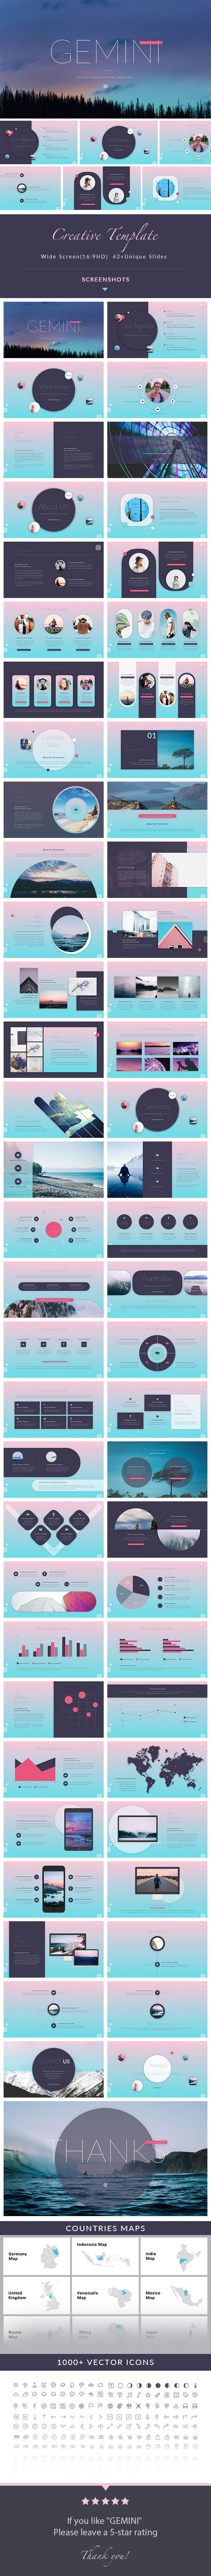 GEMINI - Creative PowerPoint Presentation Template - 62+ Unique Slides